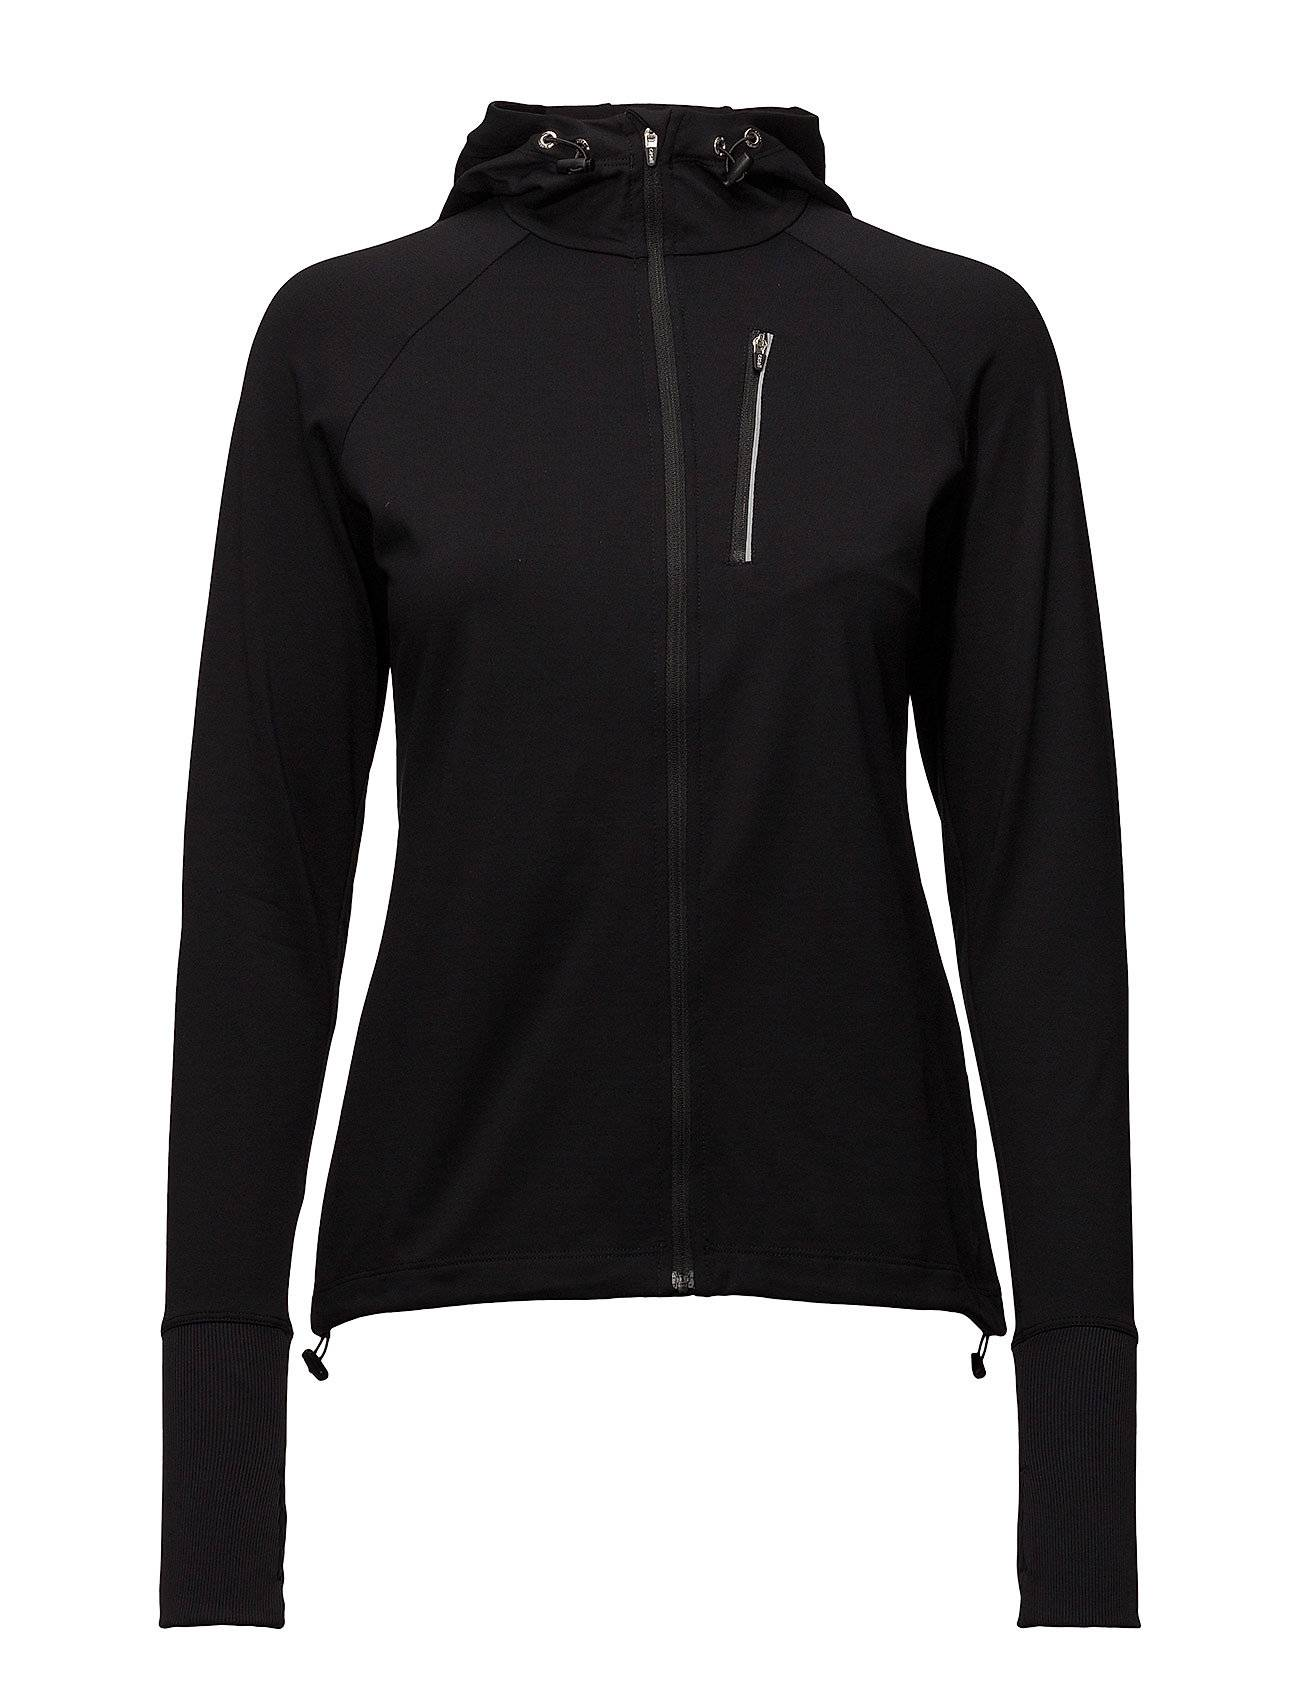 Casall Mid Layer Fleece Jacket